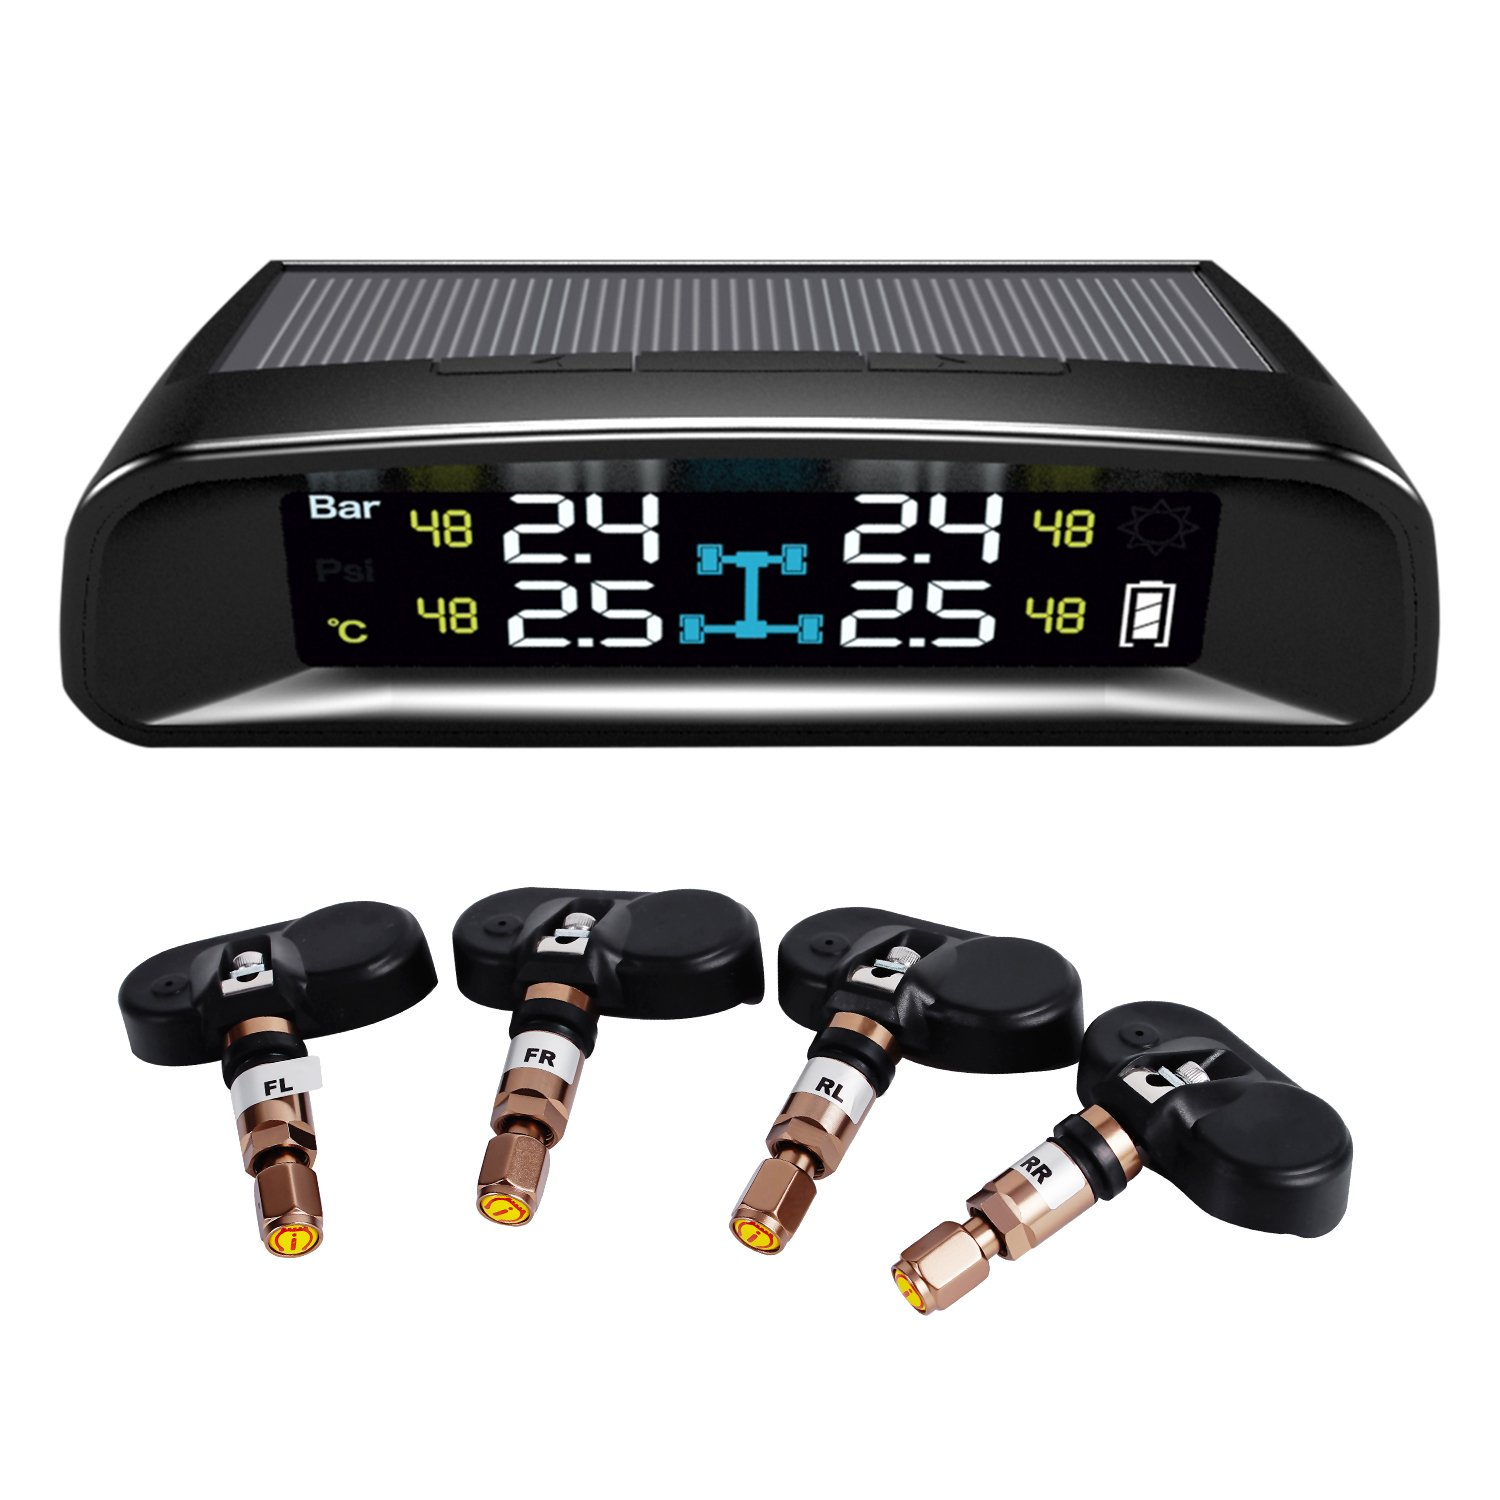 TYDO Solar Powered TPMS Wireless Tire Pressure Monitoring System 4 Sensors DIY Tire Gauge With Auto Alarm System Real-time LED Displays for RV Trailer, Internal Sensor